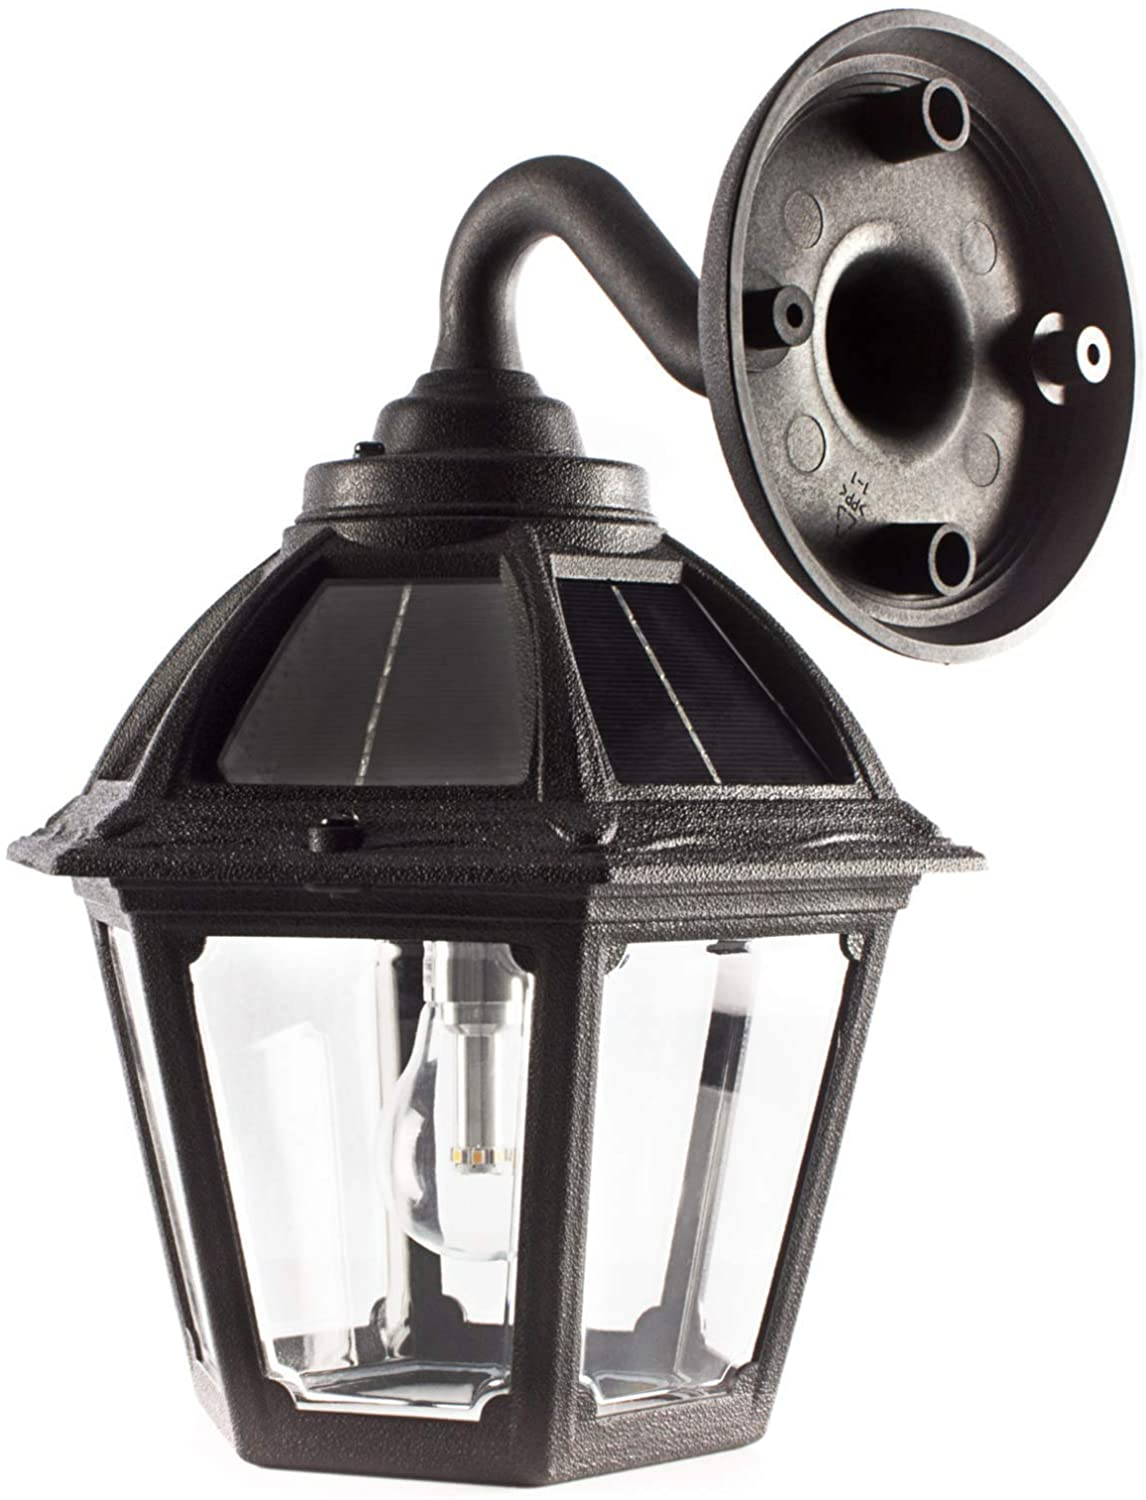 GAMA SONIC Polaris Solar Porch Wall Sconce Light, Outdoor LED Bulb Lamp, Black (177010)